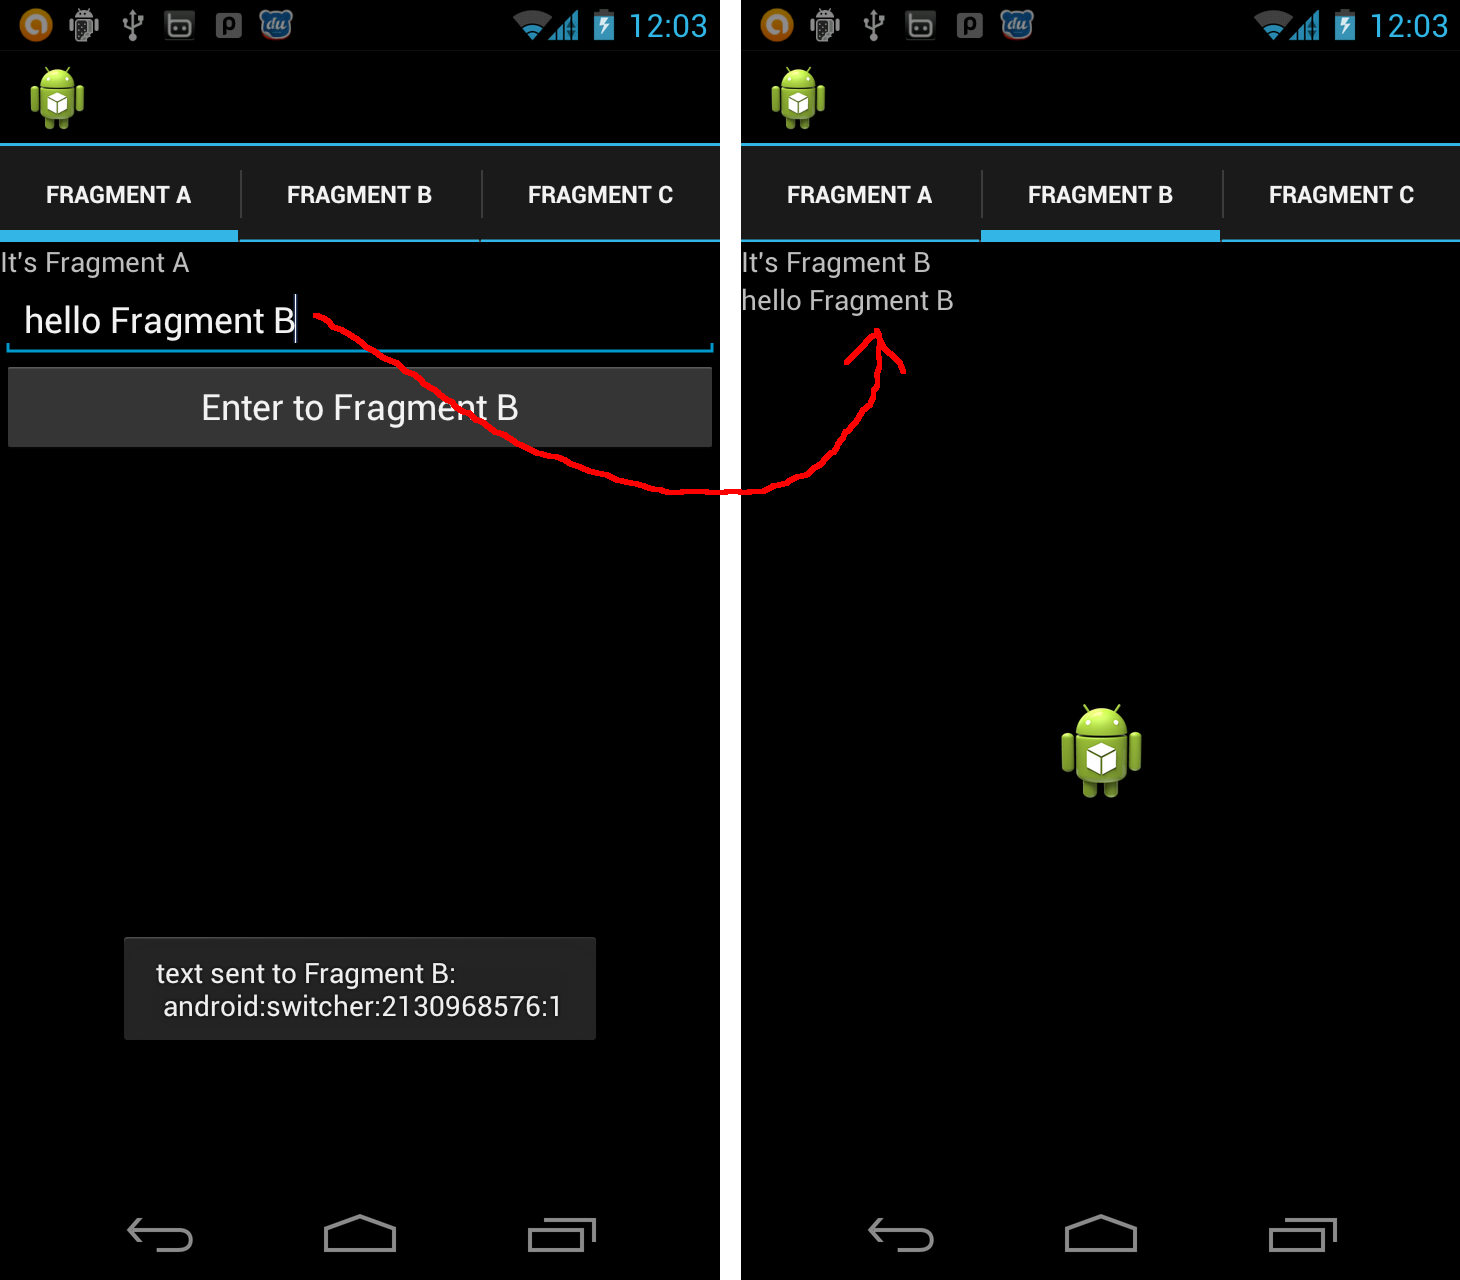 Android-er: Communication between Fragments in ViewPager